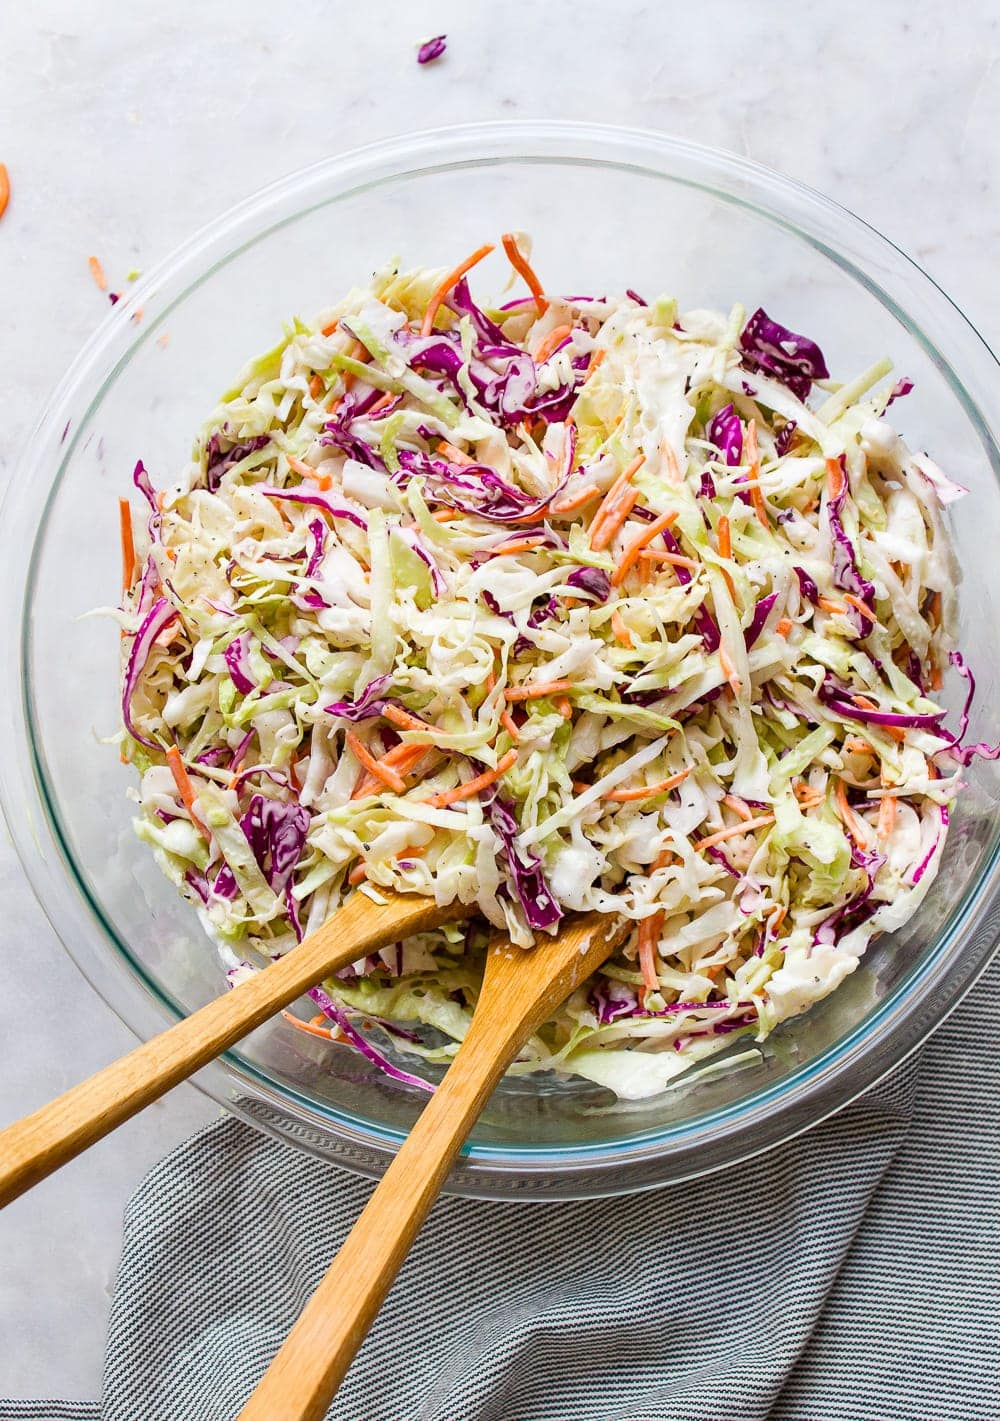 top down view of a glass mixing bowl with freshly made creamy vegan coleslaw.